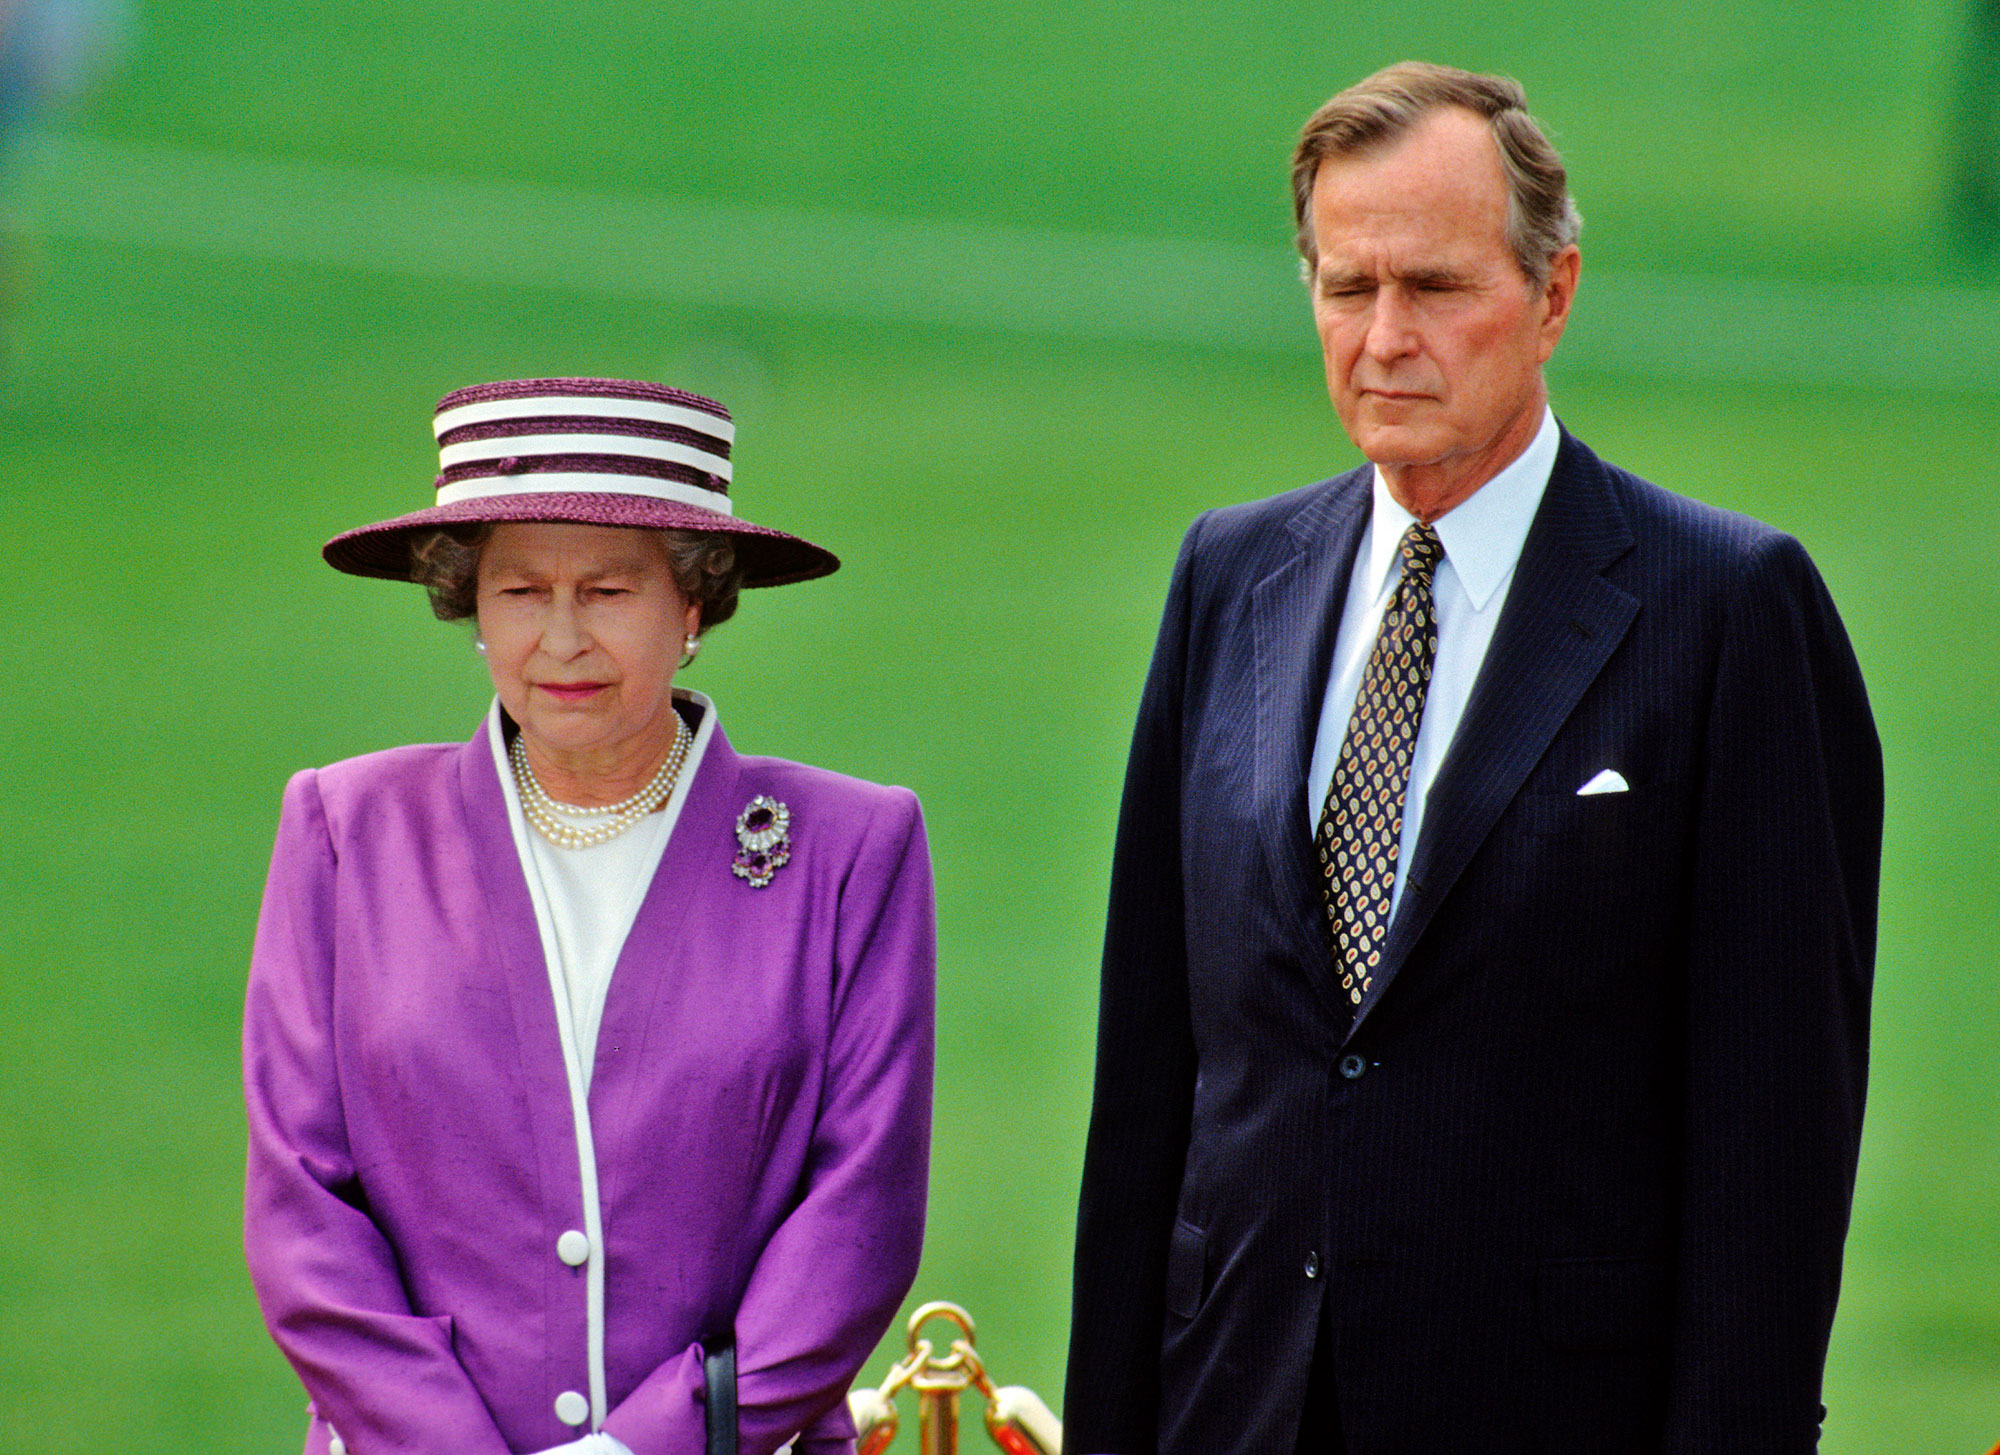 Queen Elizabeth Remembers George H.W. Bush — Who She Knighted in 1993 — with 'Great Fondness' george-bush-b